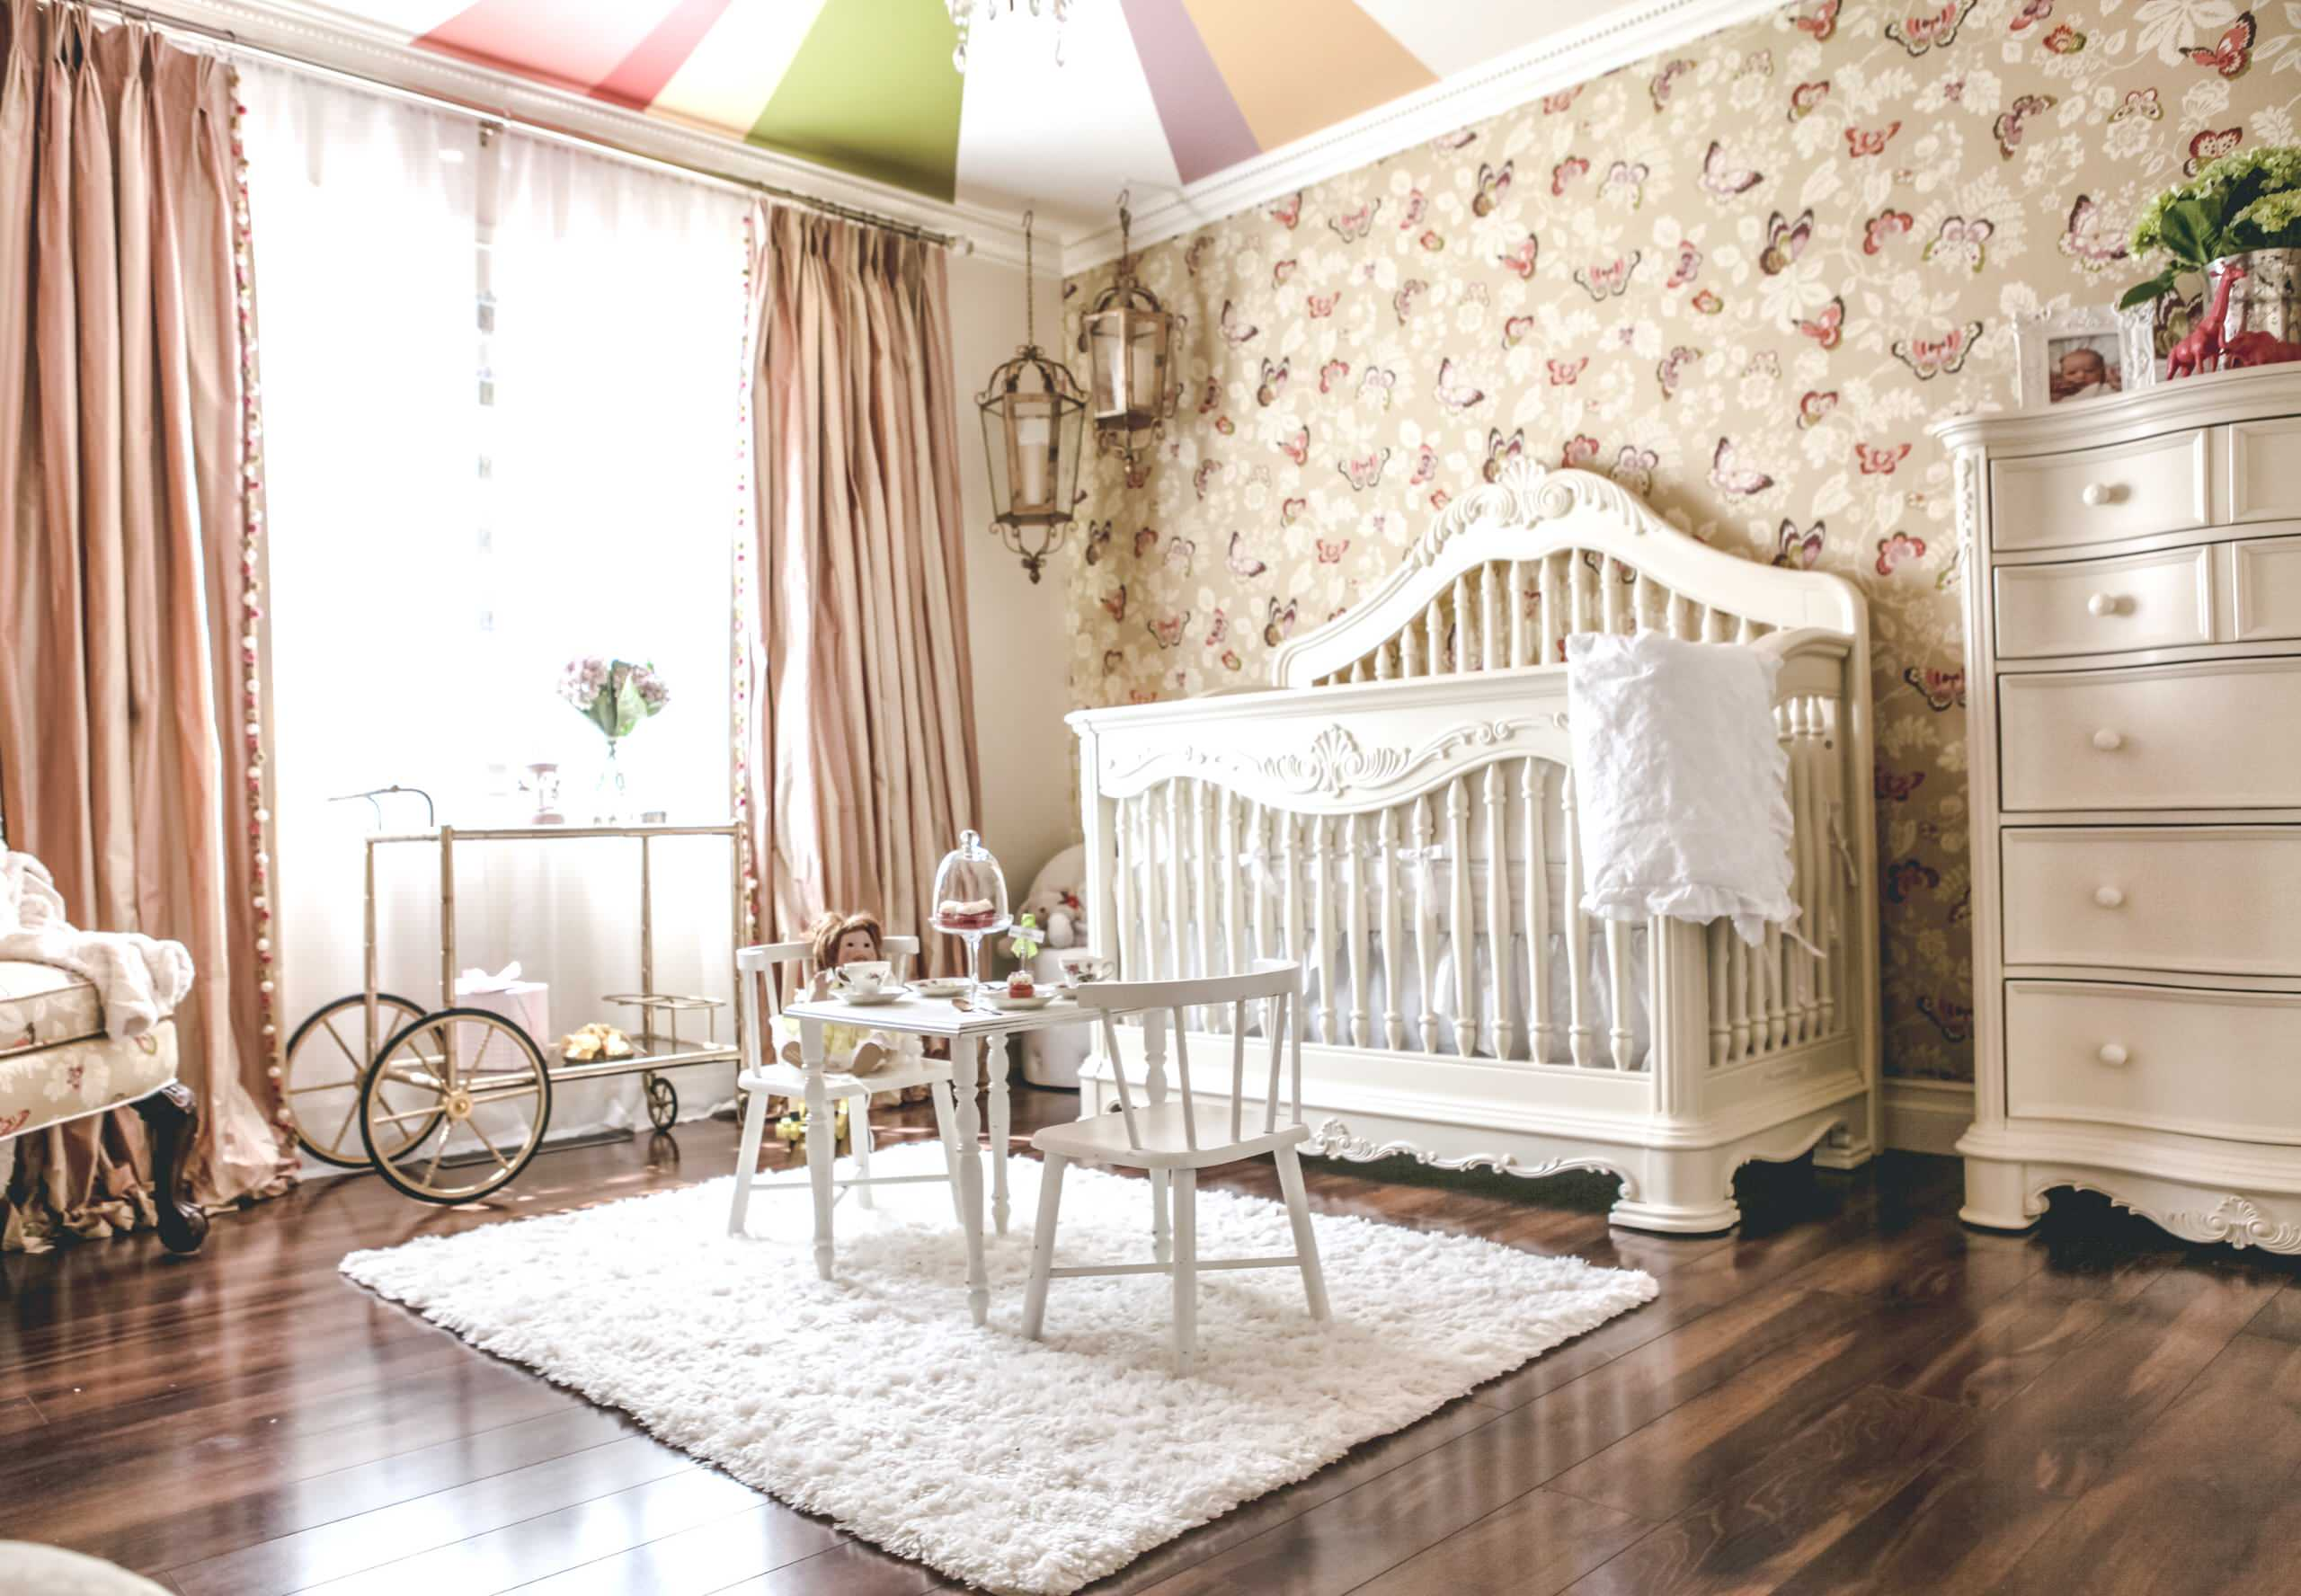 75 Beautiful Kids Room Pictures Ideas Style Victorian July 2021 Houzz